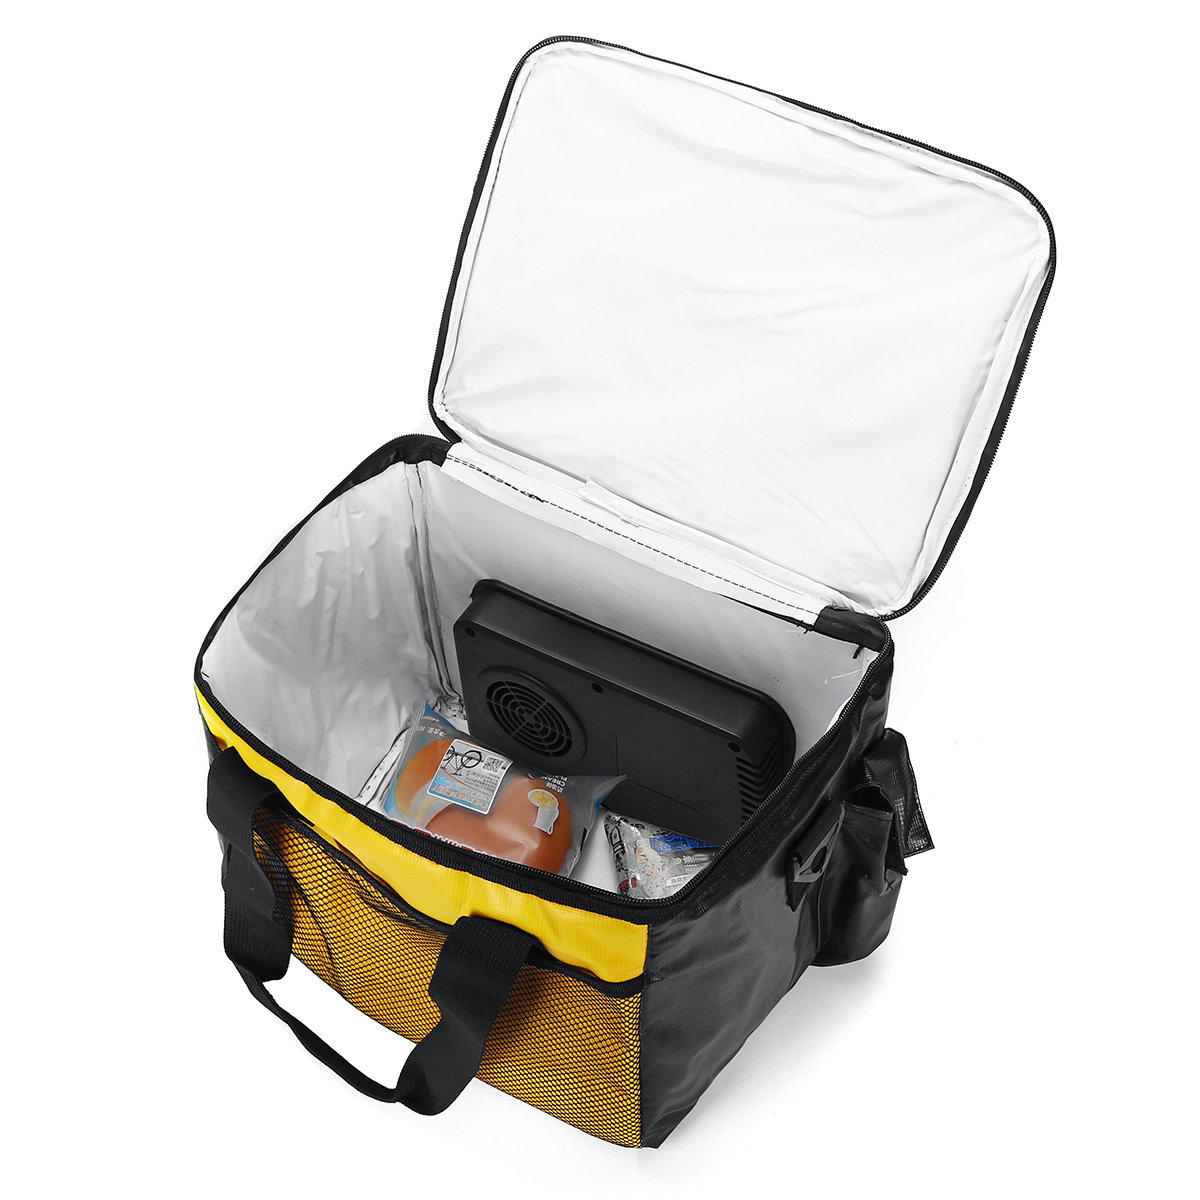 Portable Car Adapter Electric Lunch Box Heated Bento Food Warmer Bags Insulated Bag